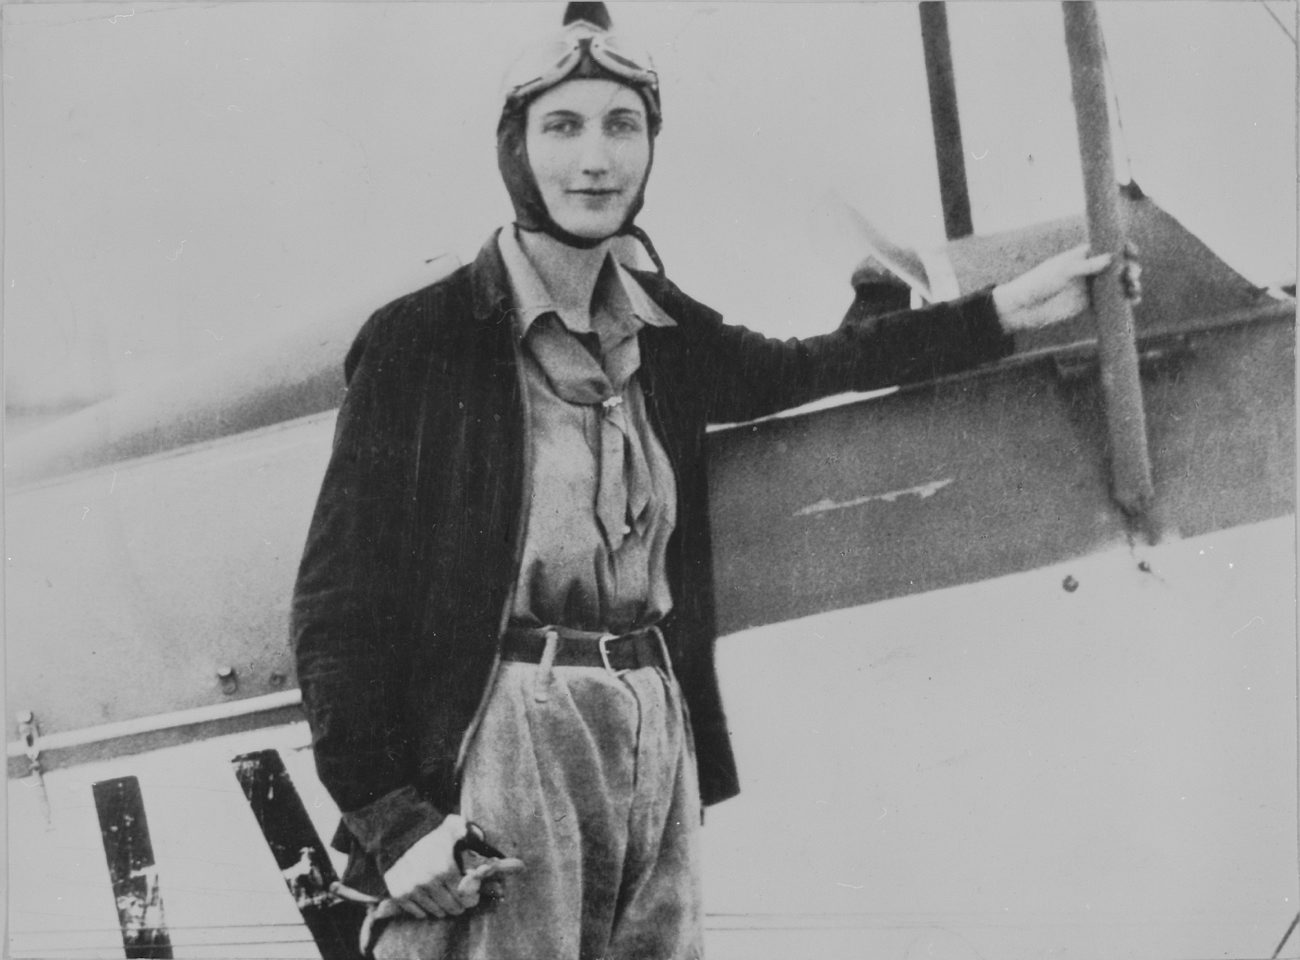 https://upload.wikimedia.org/wikipedia/commons/8/8e/Beryl_Markham_(12990136984).jpg